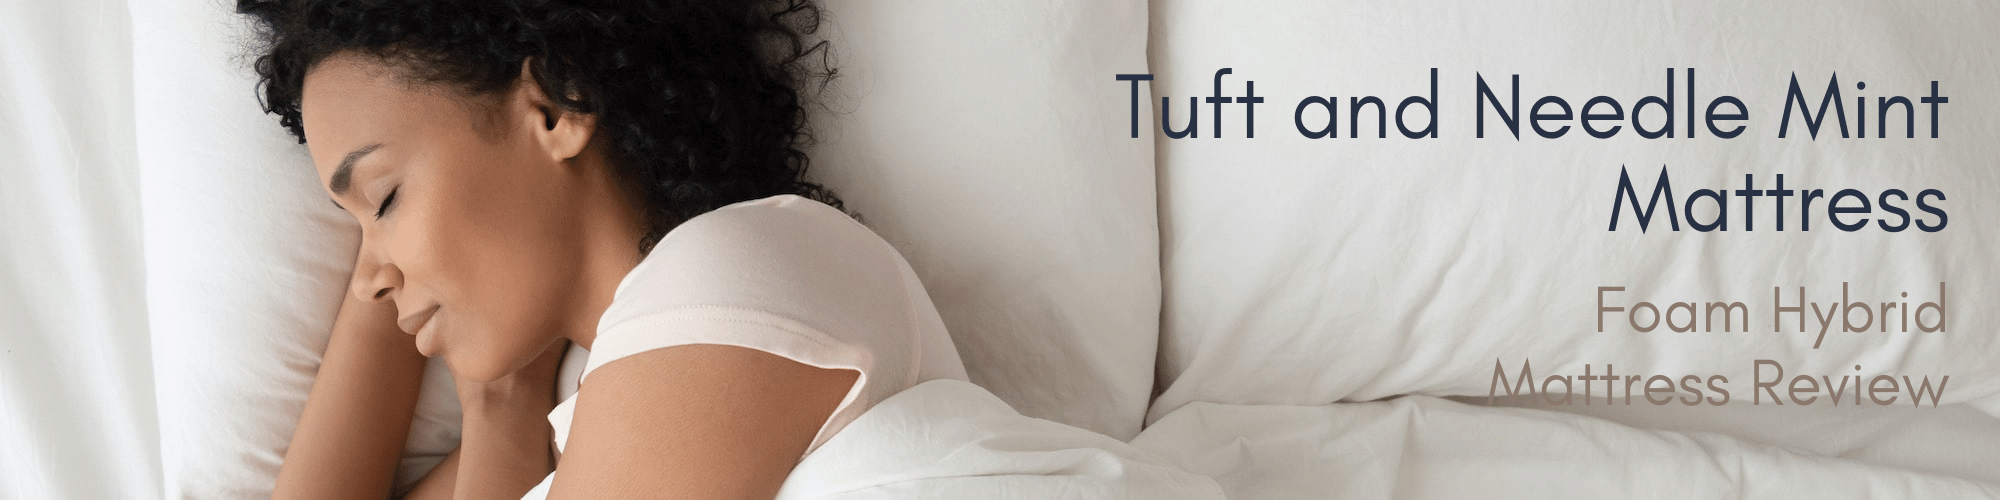 tuft and needle mint review